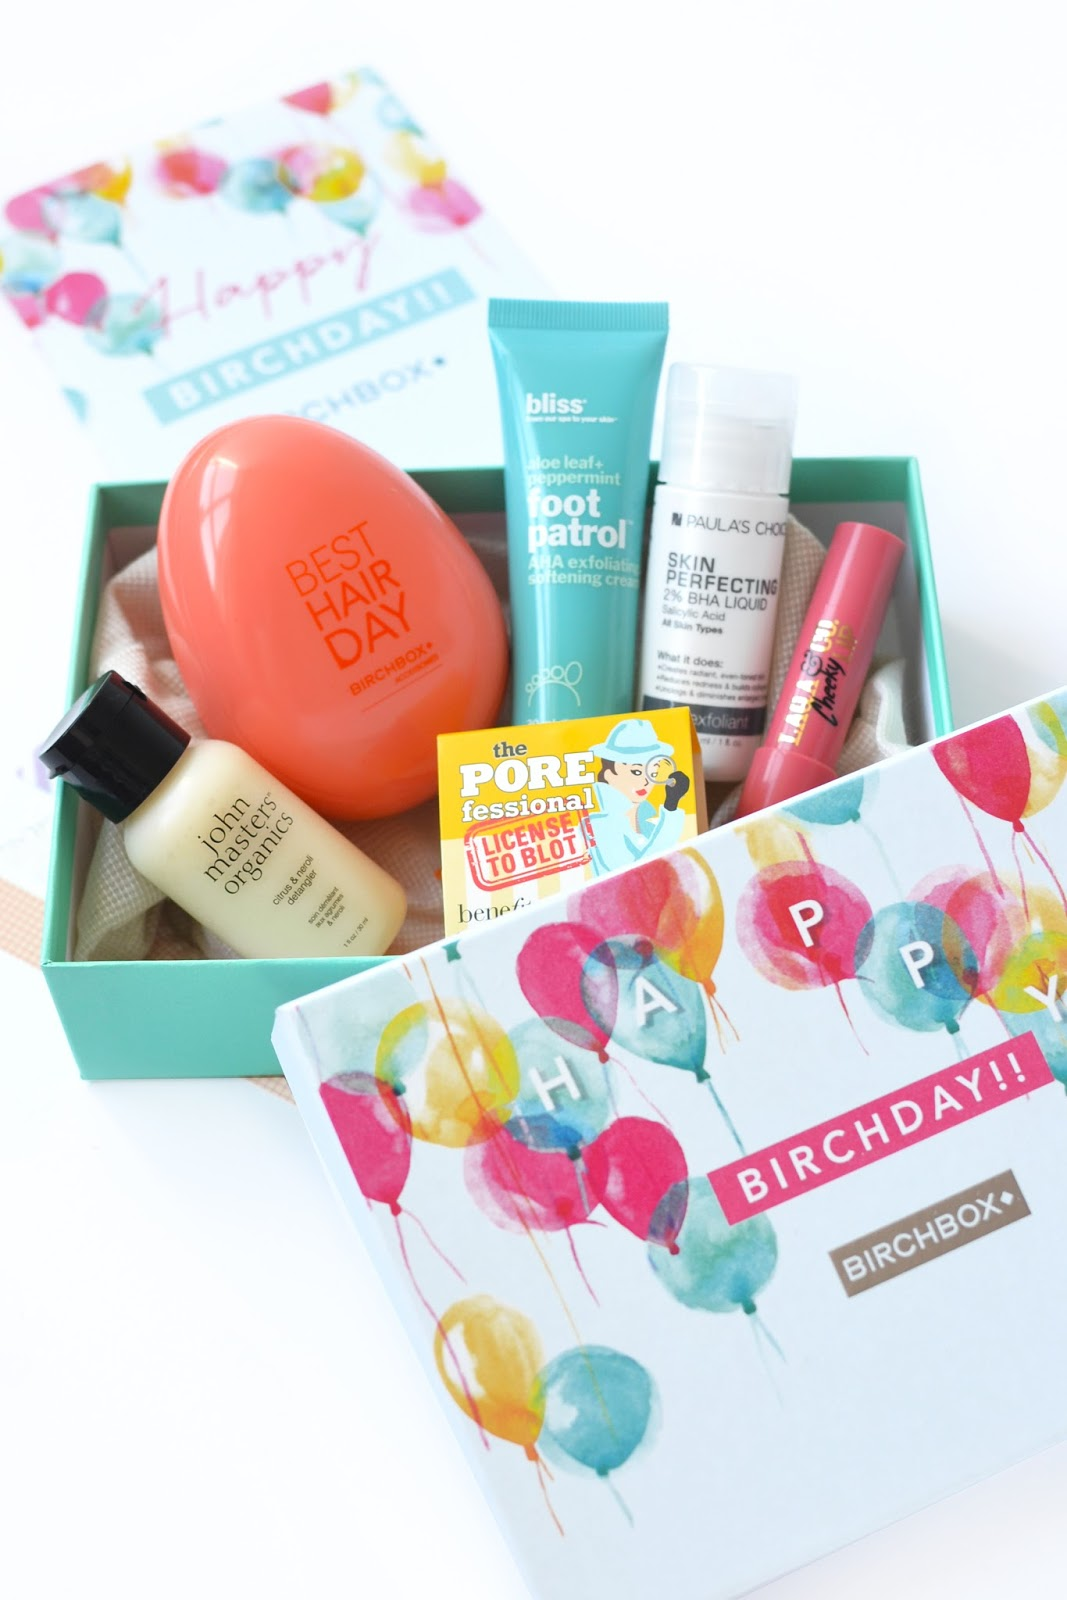 birchbox birthday edition, birchbox september 2015